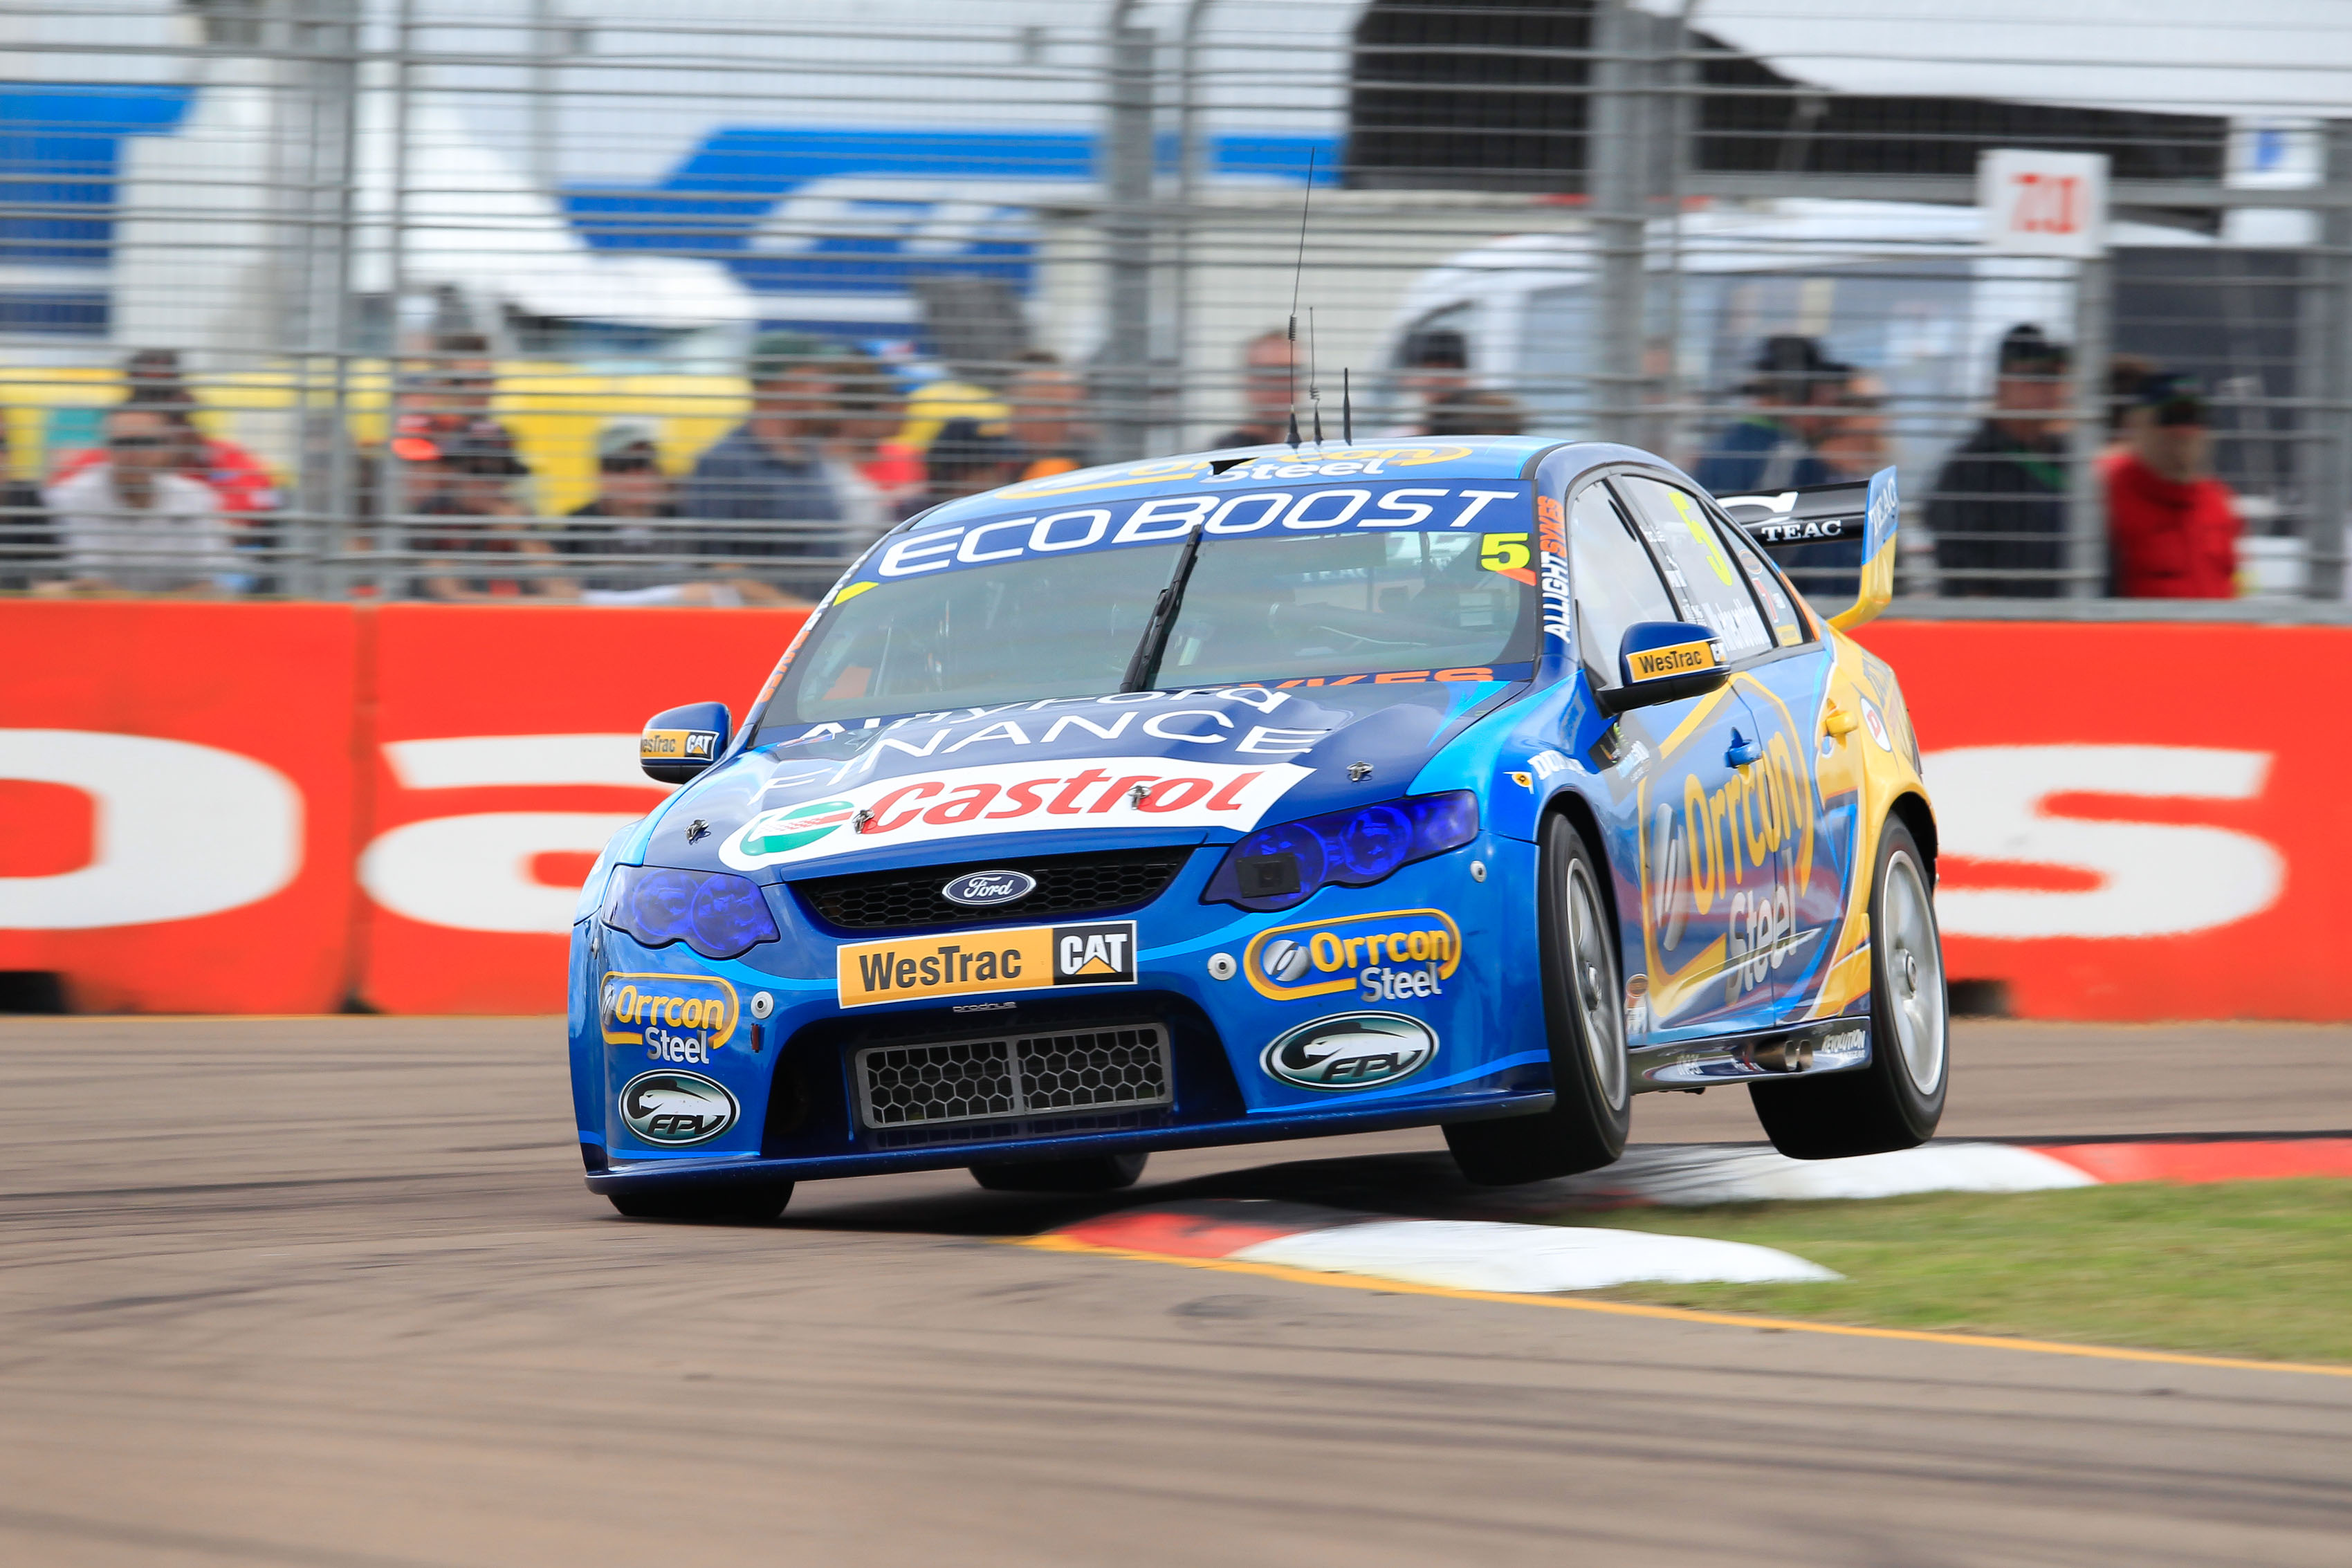 V8 Supercars Wallpapers HD Download 3400x2267